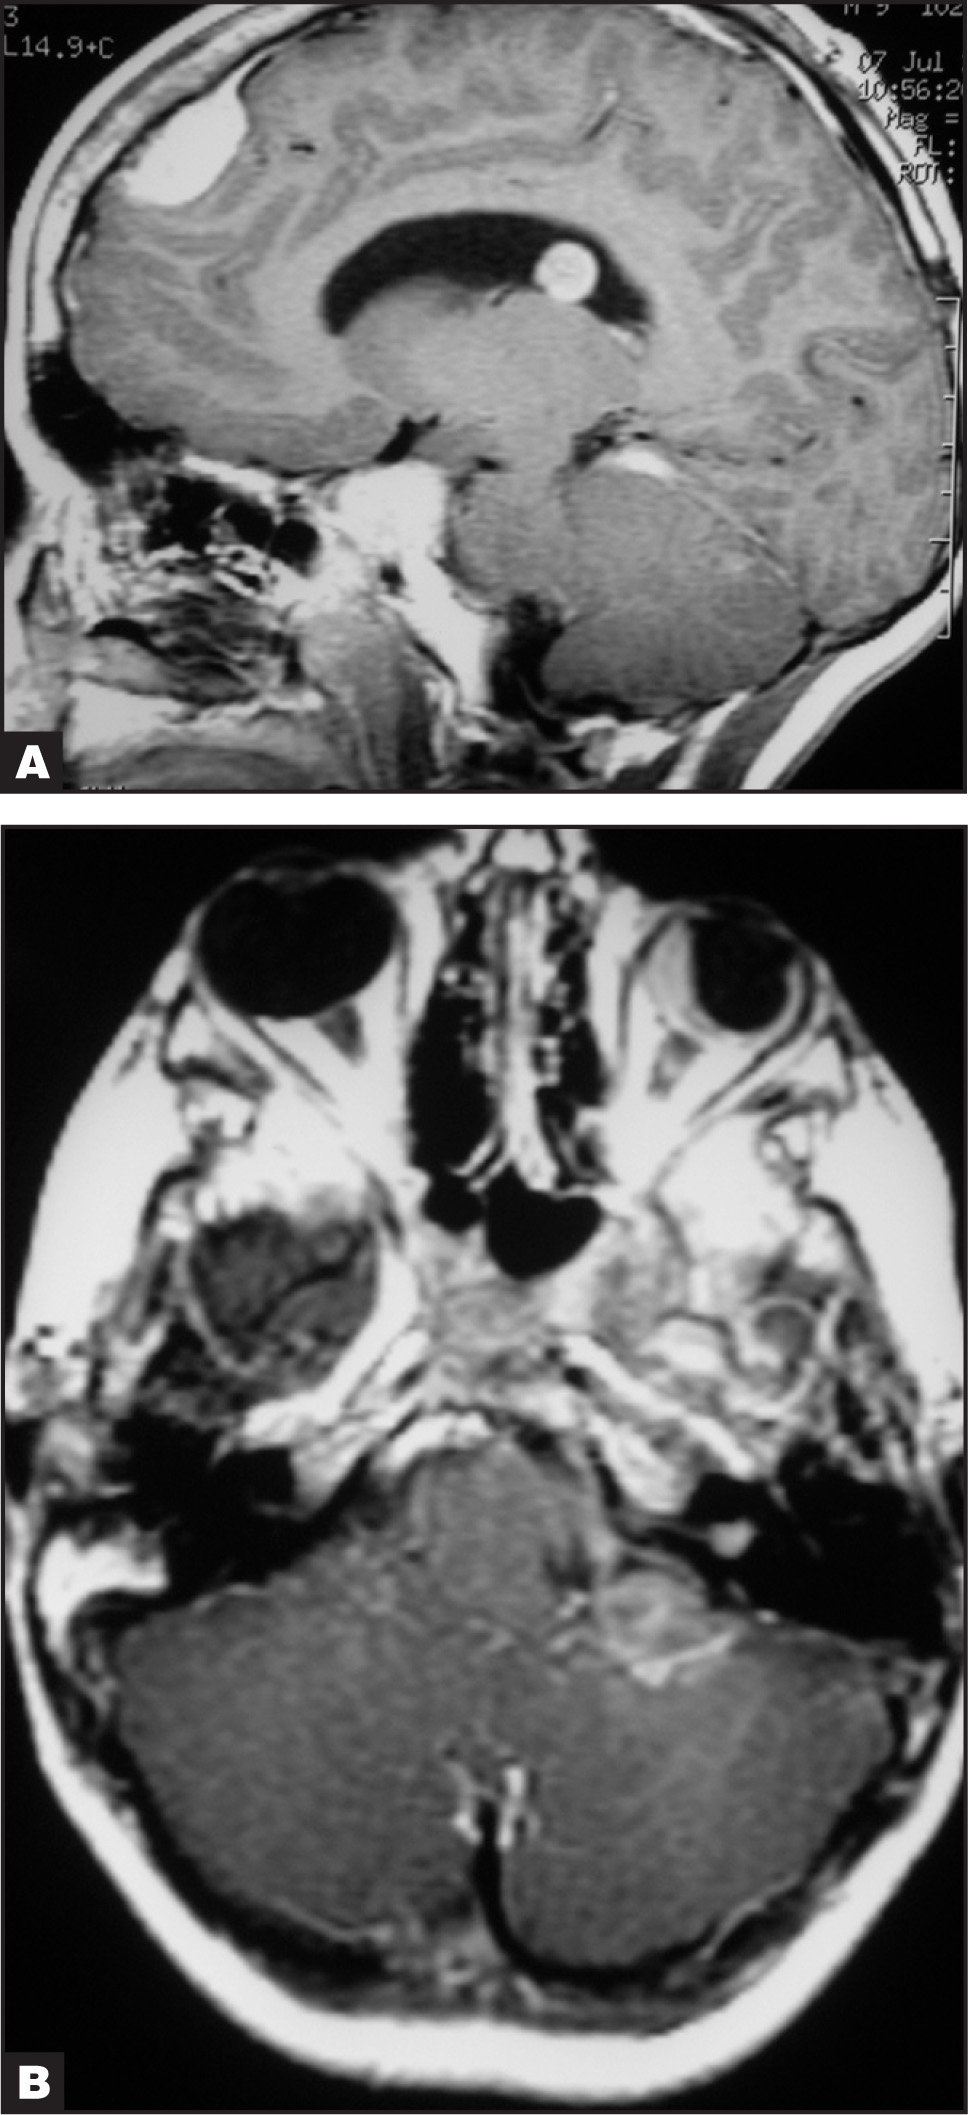 Magnetic Resonance Imaging of the Brain with Gadolinium of Case 2 Demonstrating Multiple Benign Brain Tumors, Most Consistent with Meningiomas, and an Acoustic Schwannoma (acoustic Neuroma) on the Left. (A) Sagittal T1-Weighted Image. (B) Axial T1-Weighted Image.